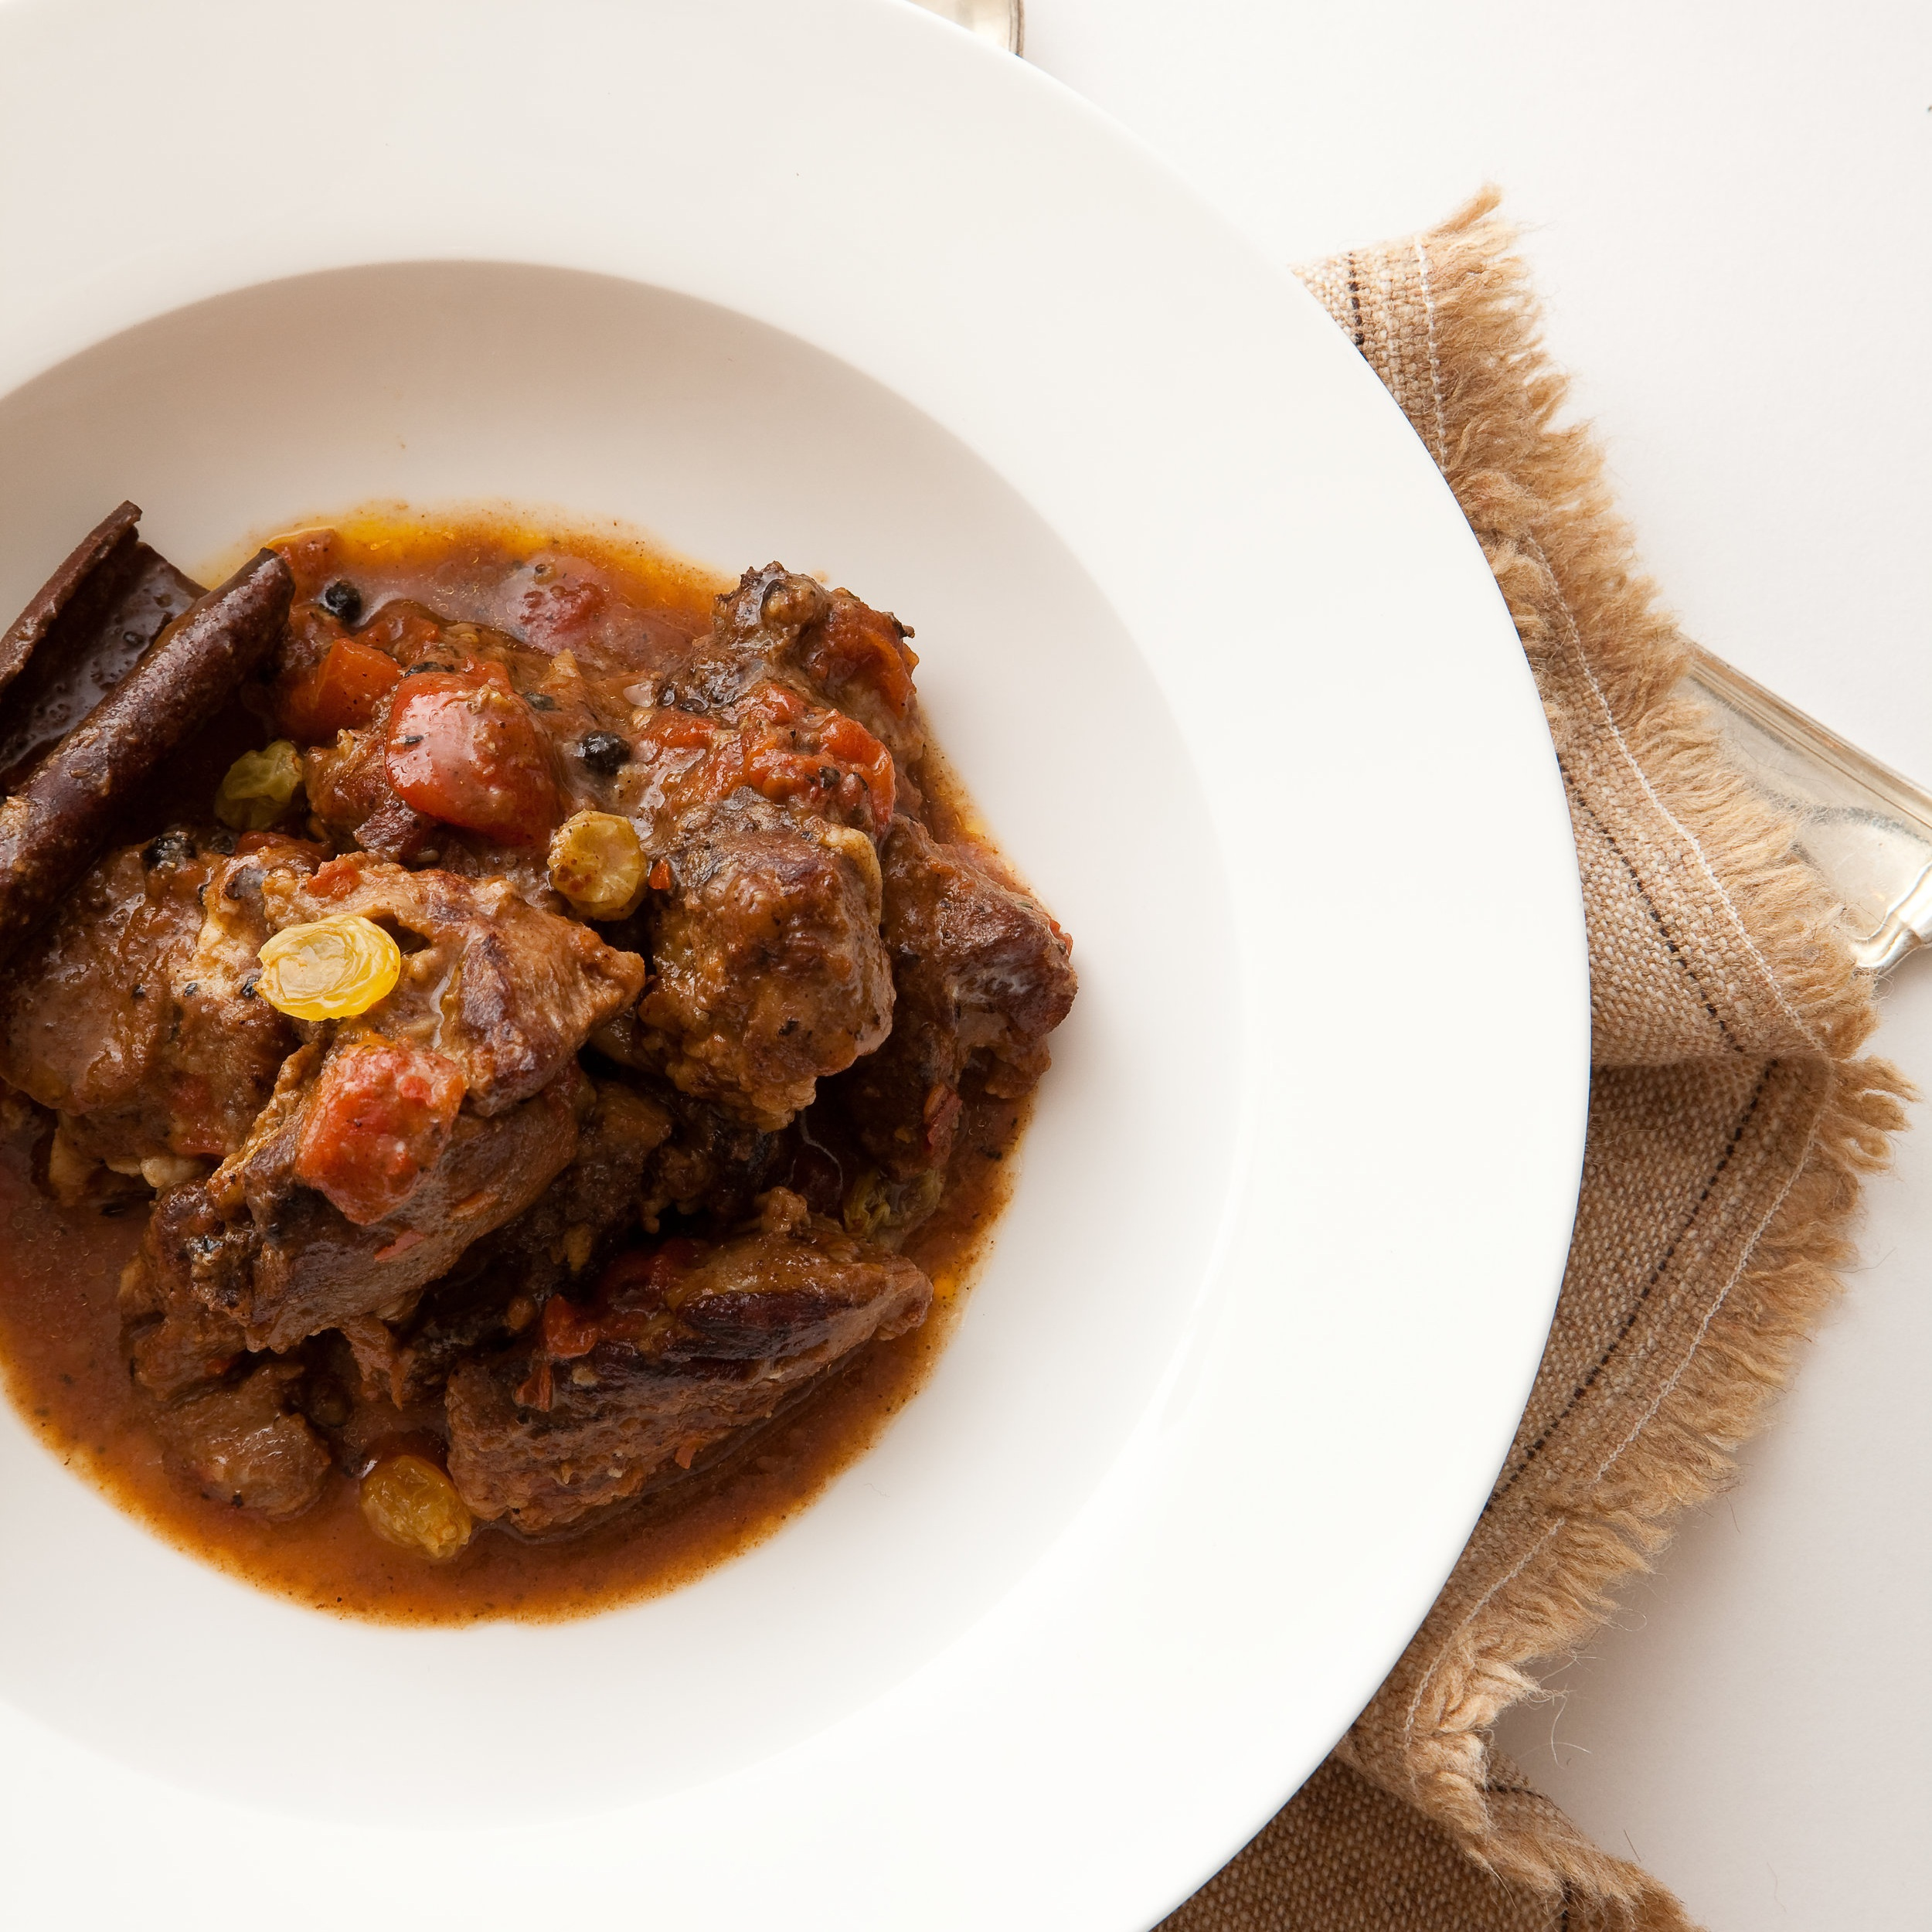 Lamb stew with cinnamon and raisins.jpg